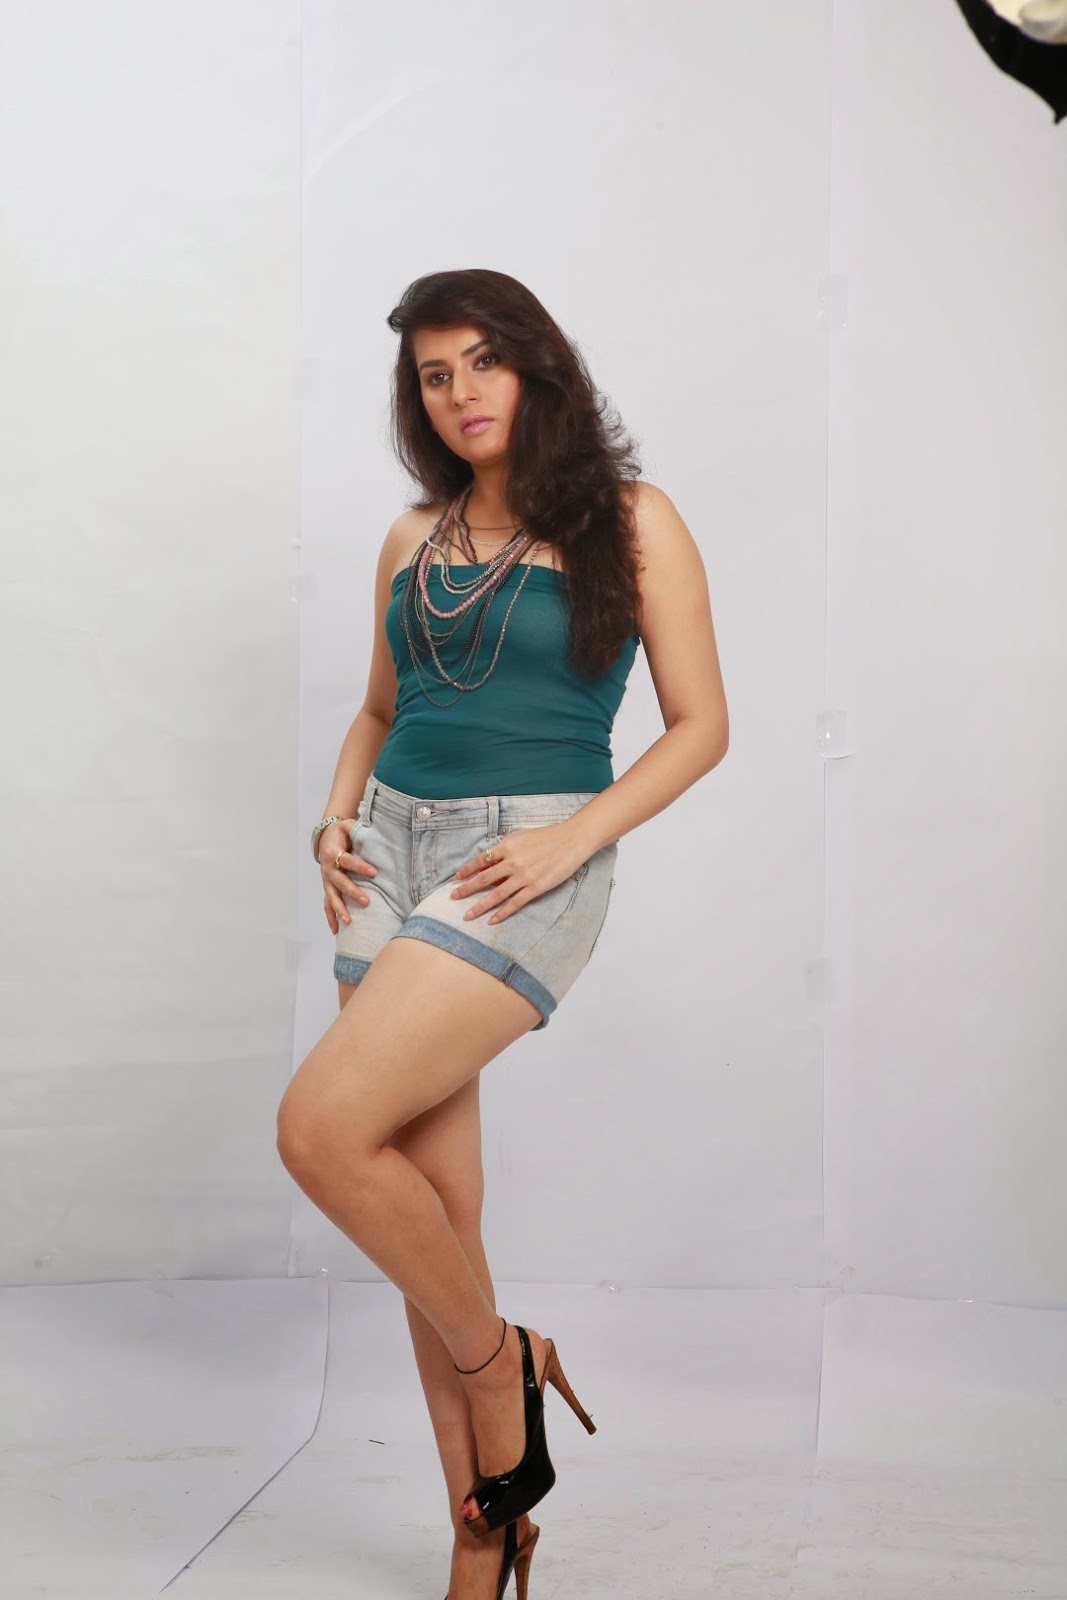 Veda Archana Shastry - Hot GIF Collections